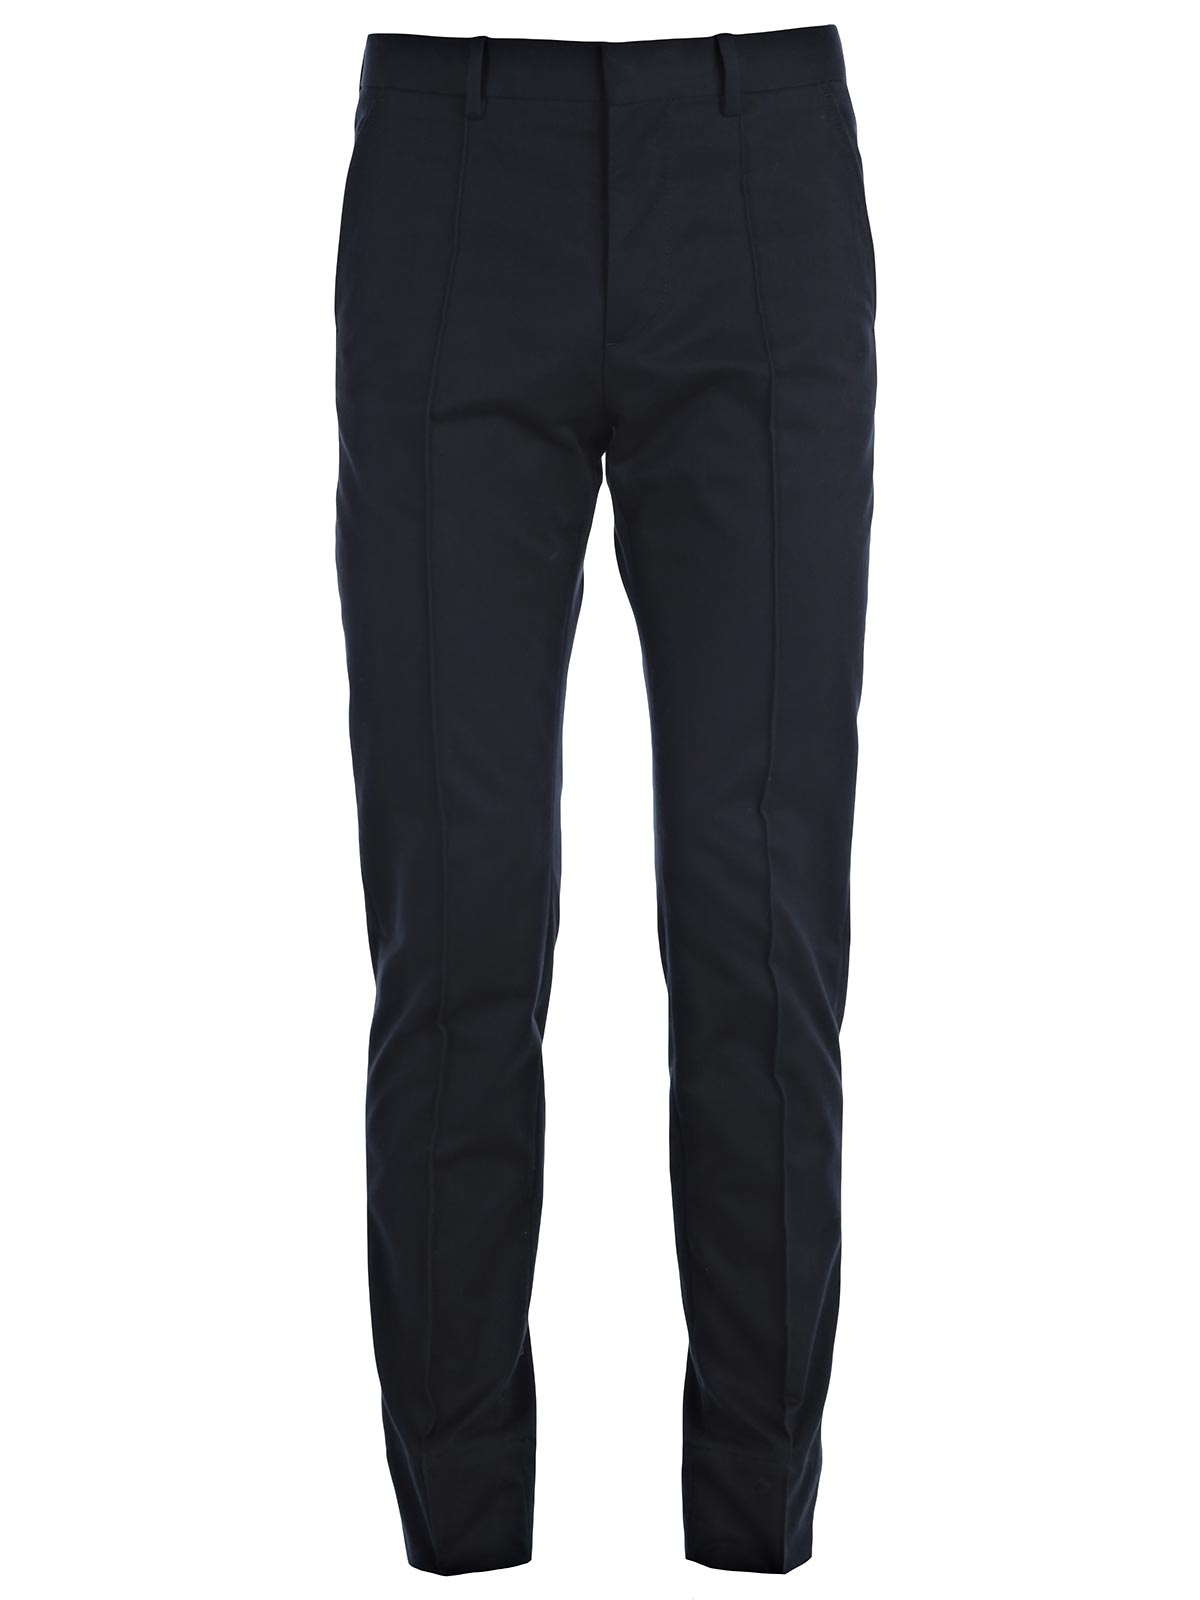 Picture of MARNI TROUSERS PANTALONE ZIP IN FONDO